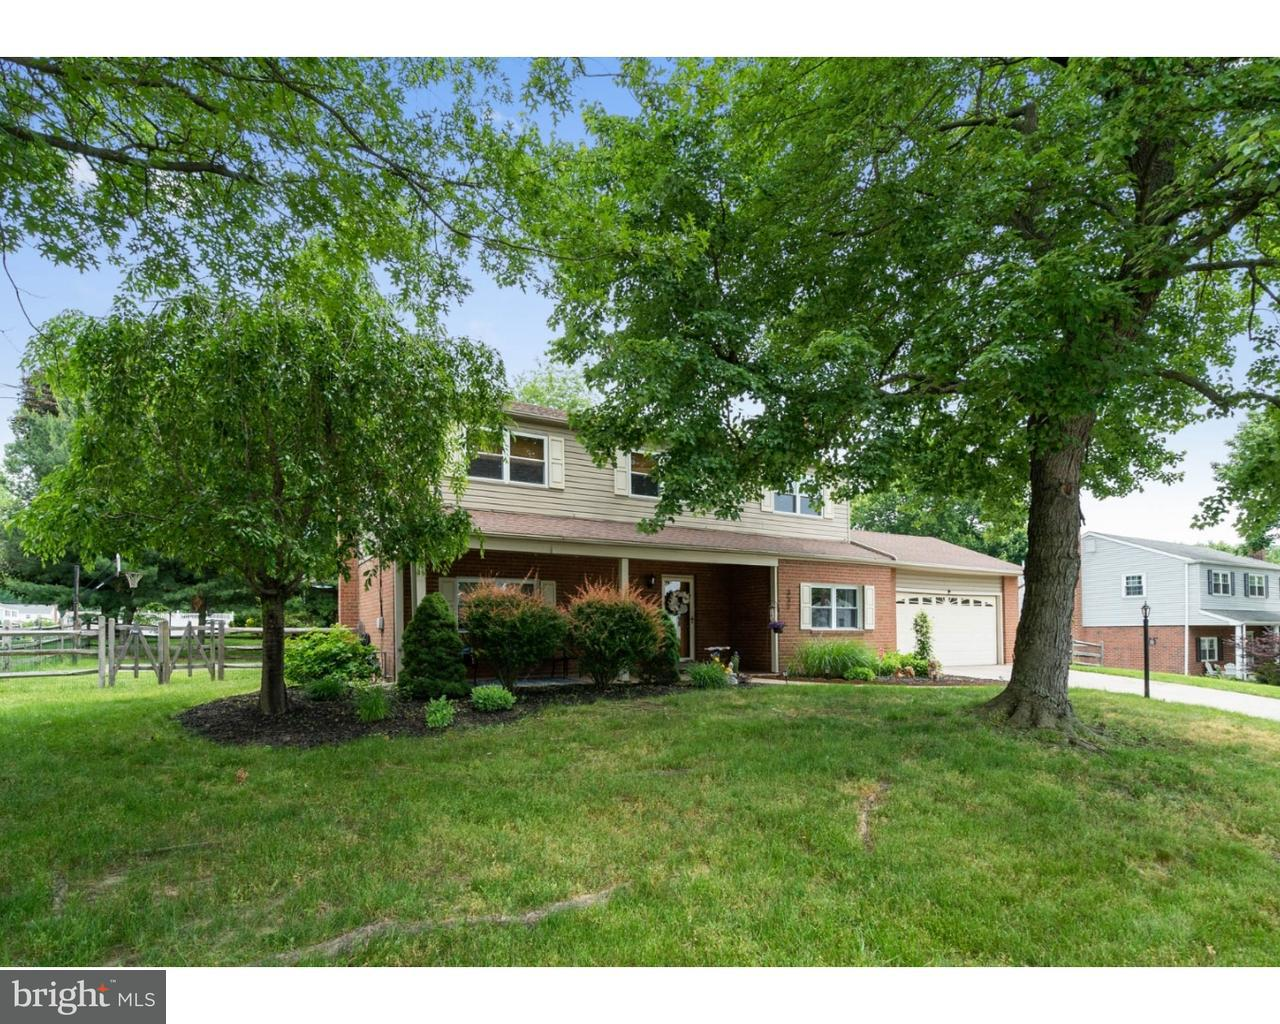 331 BRIGHTON RD, PLYMOUTH MEETING - Listed at $415,000, PLYMOUTH MEETING